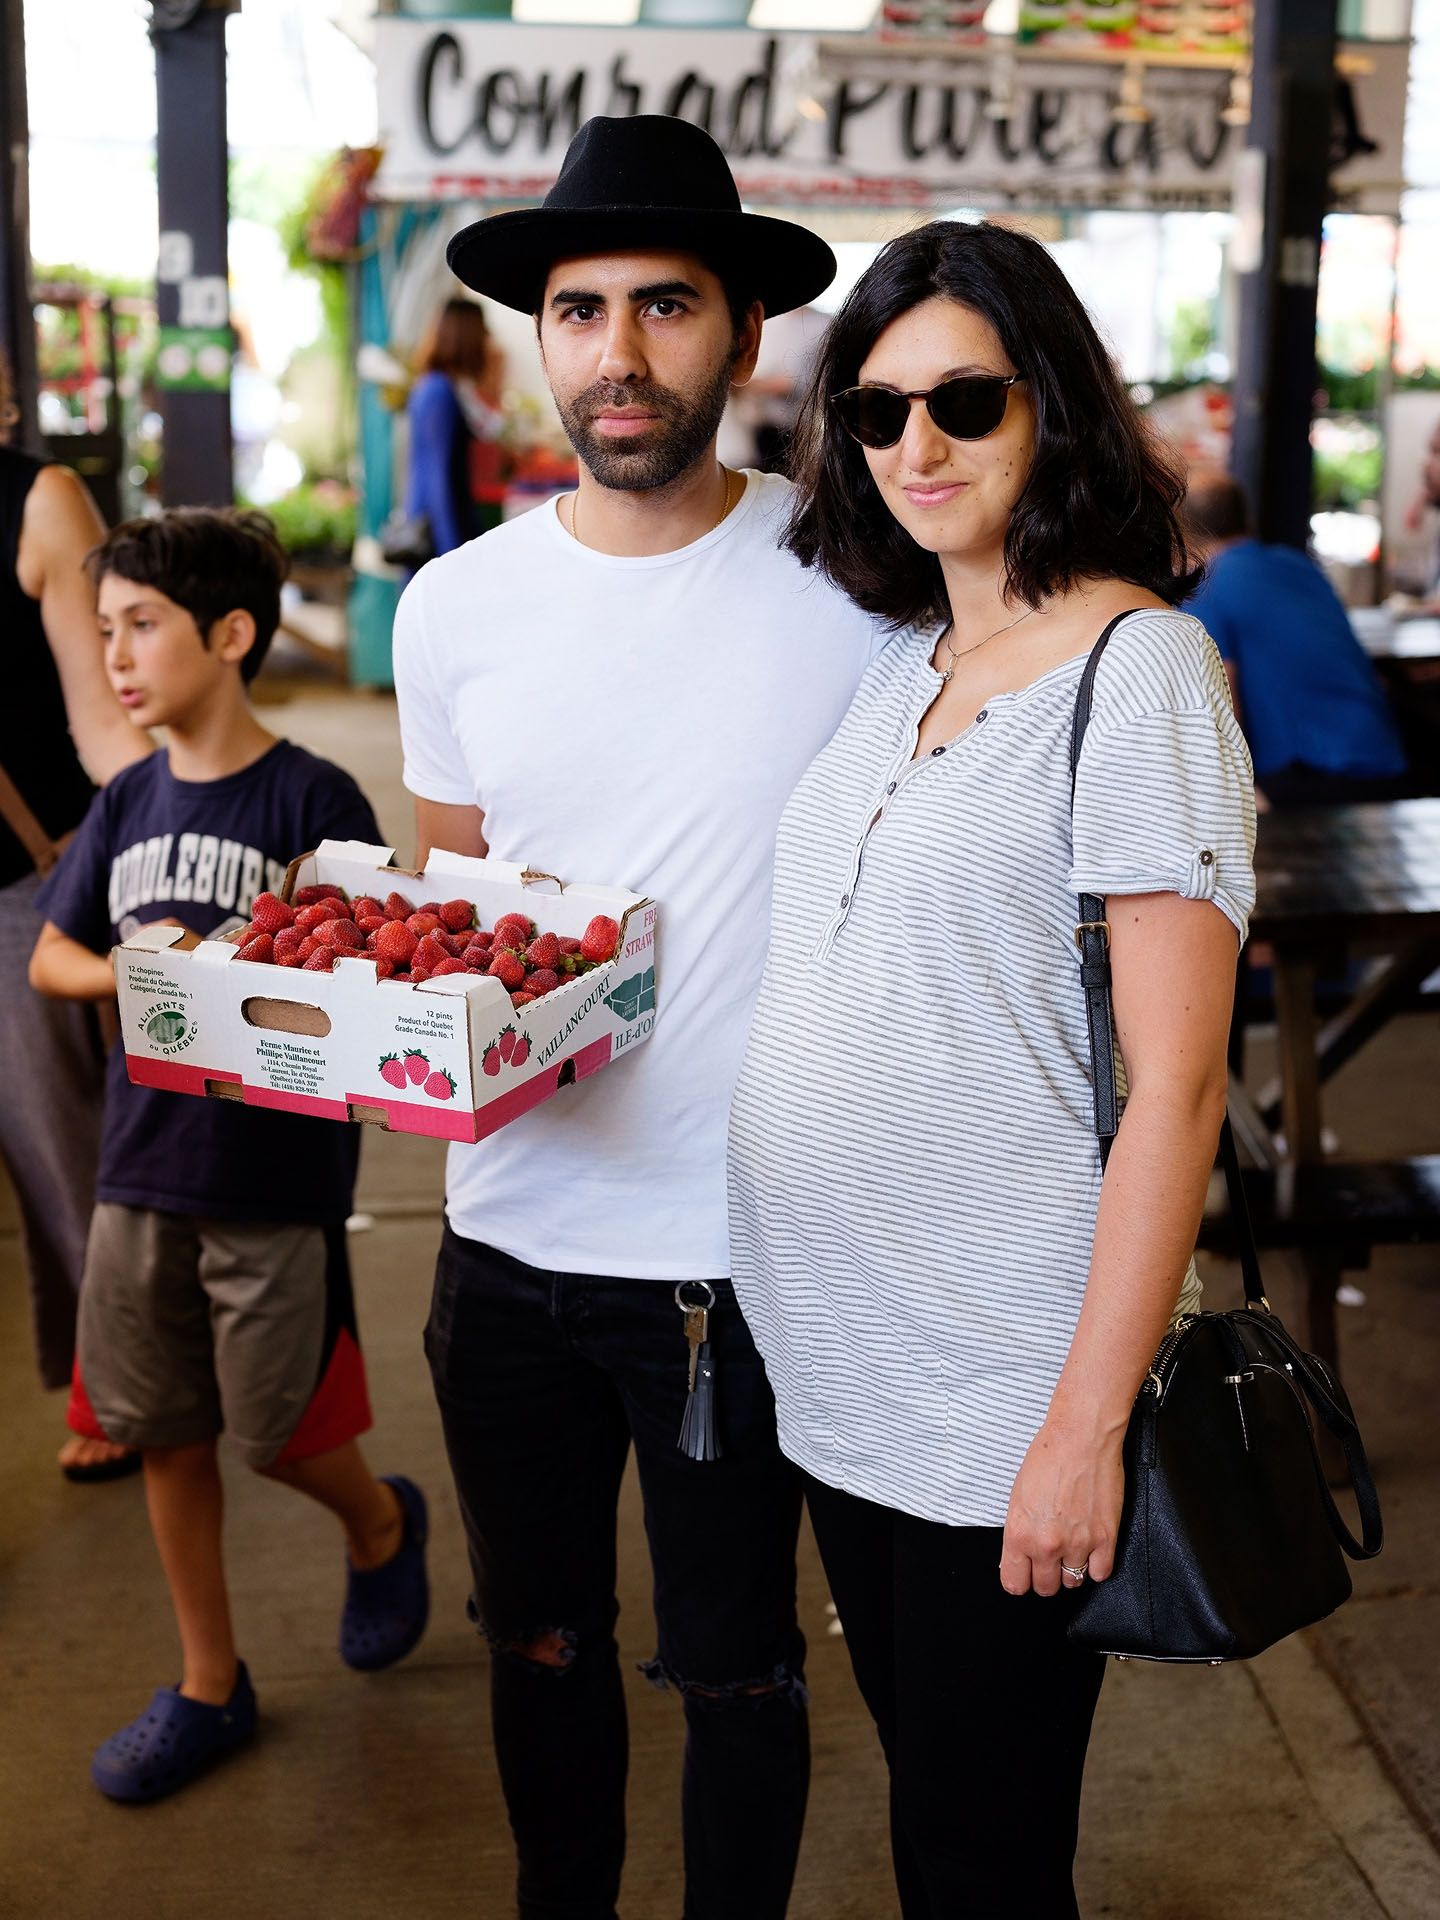 couple standing at the market holding a crate of strawberries looking at camera photographed by Guillaume Simoneau as part of Off Duty Montreal series for The Wall Street Journal magazine